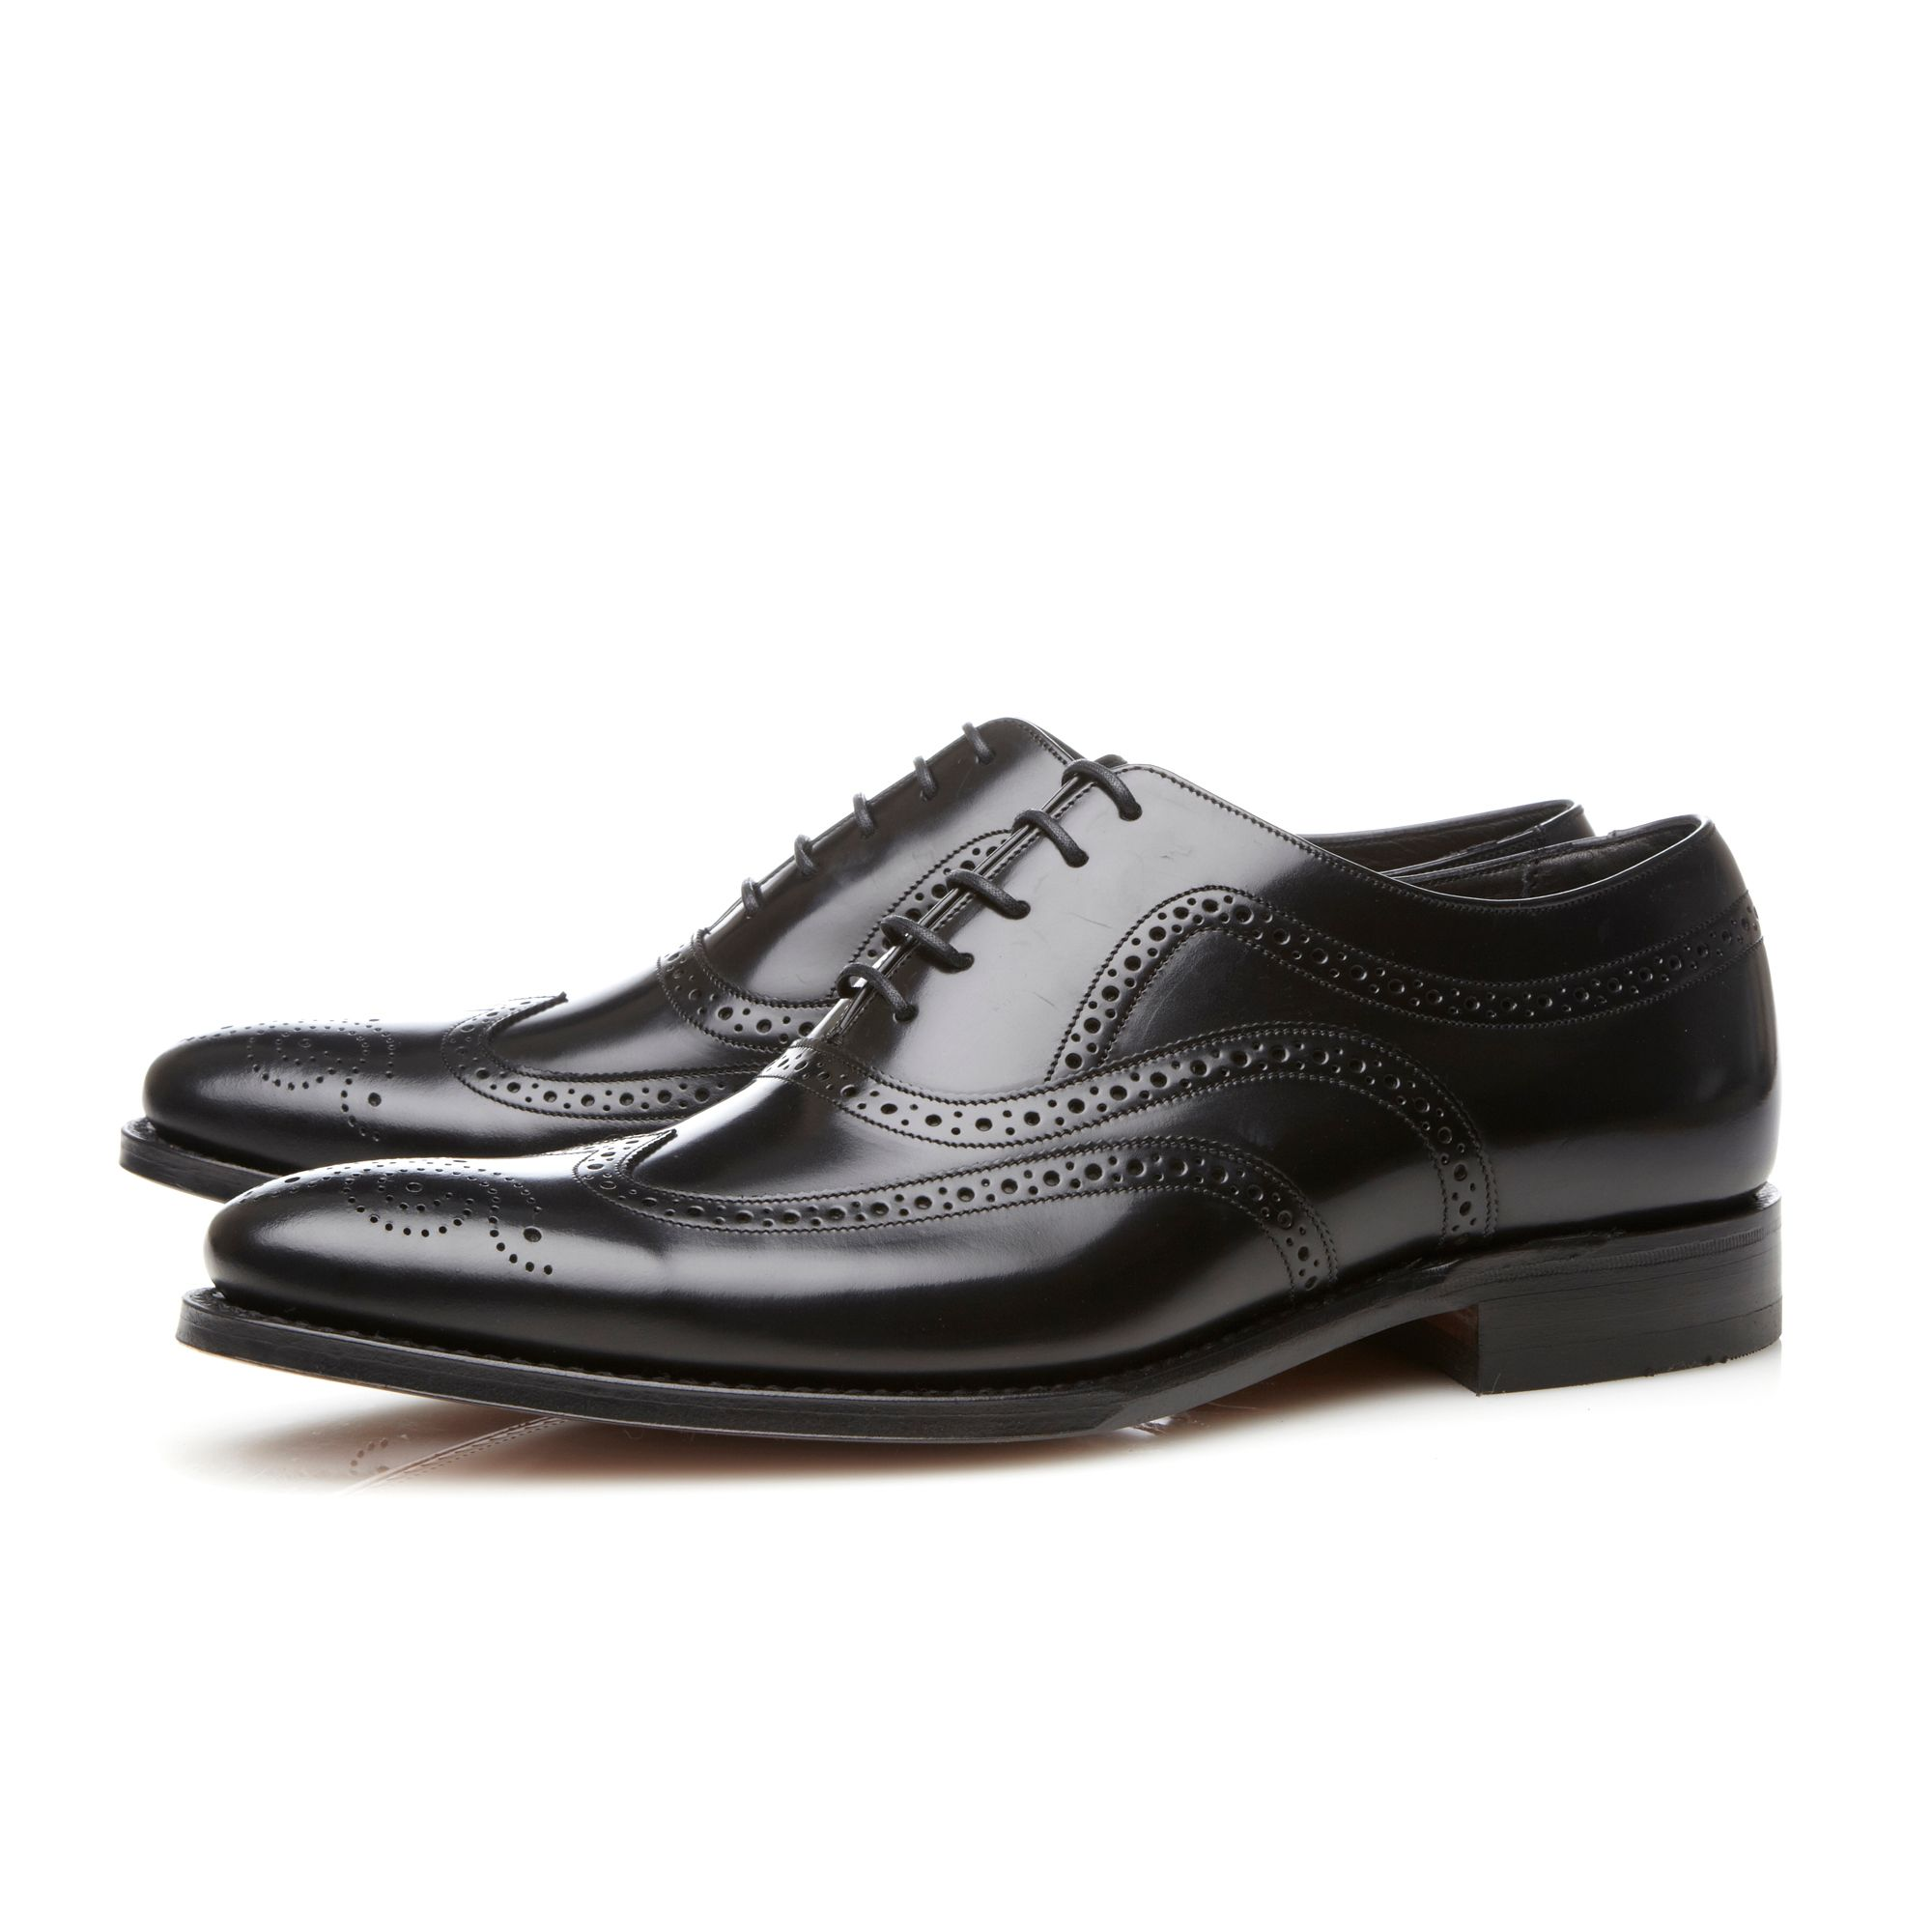 Jones wingtip lace up brogues